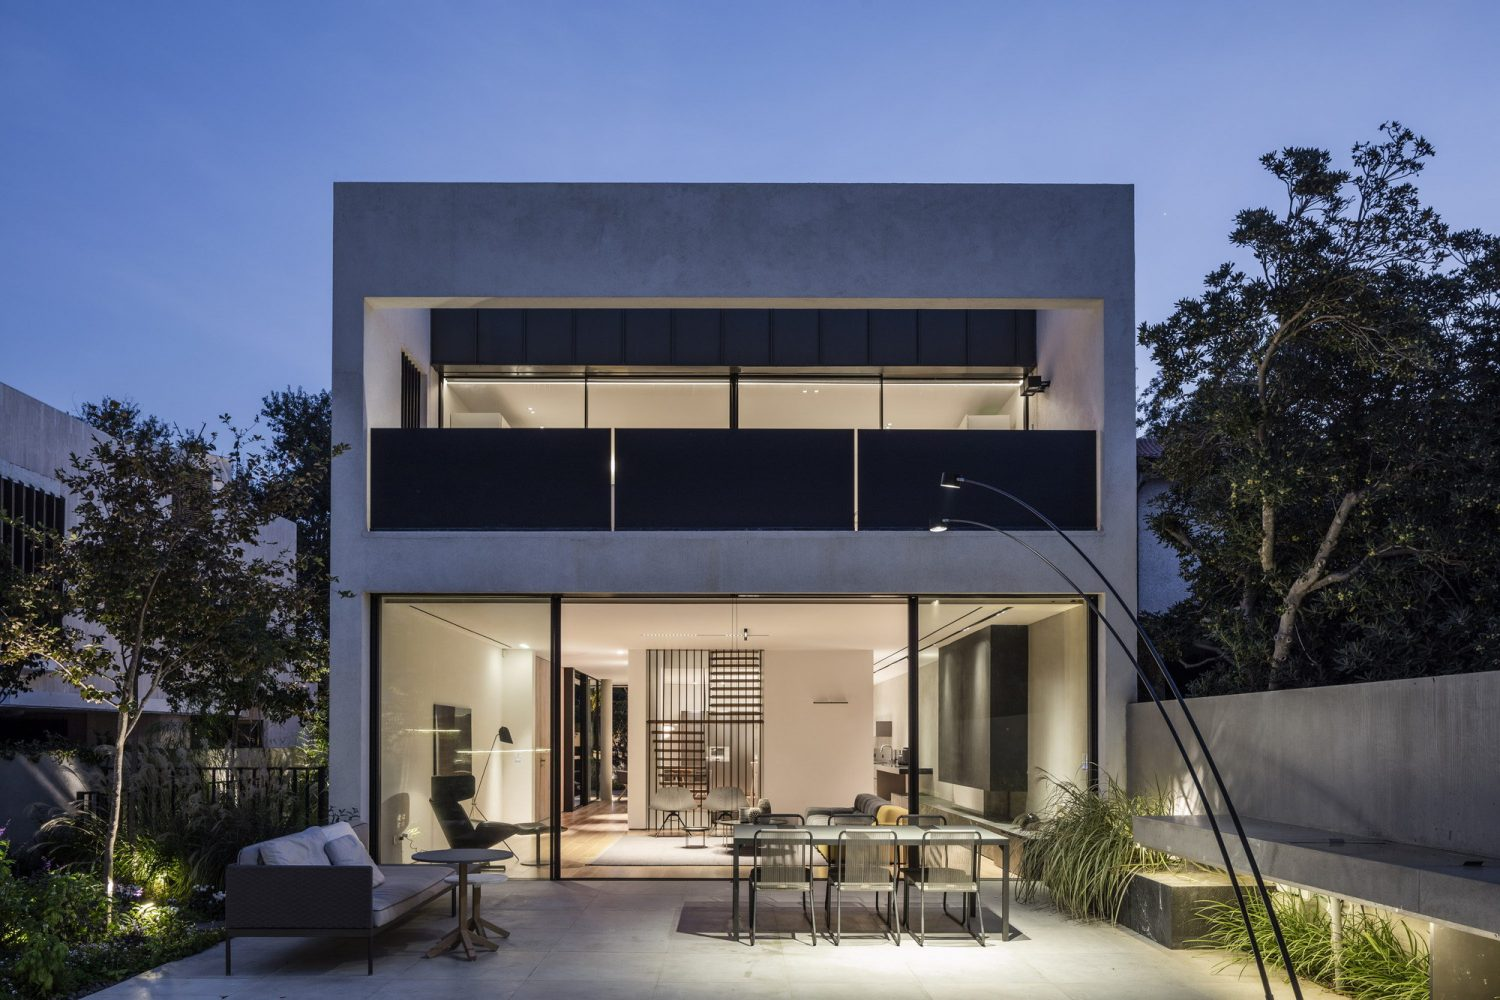 House in Hertzliya Pituah by Levin Packer architects